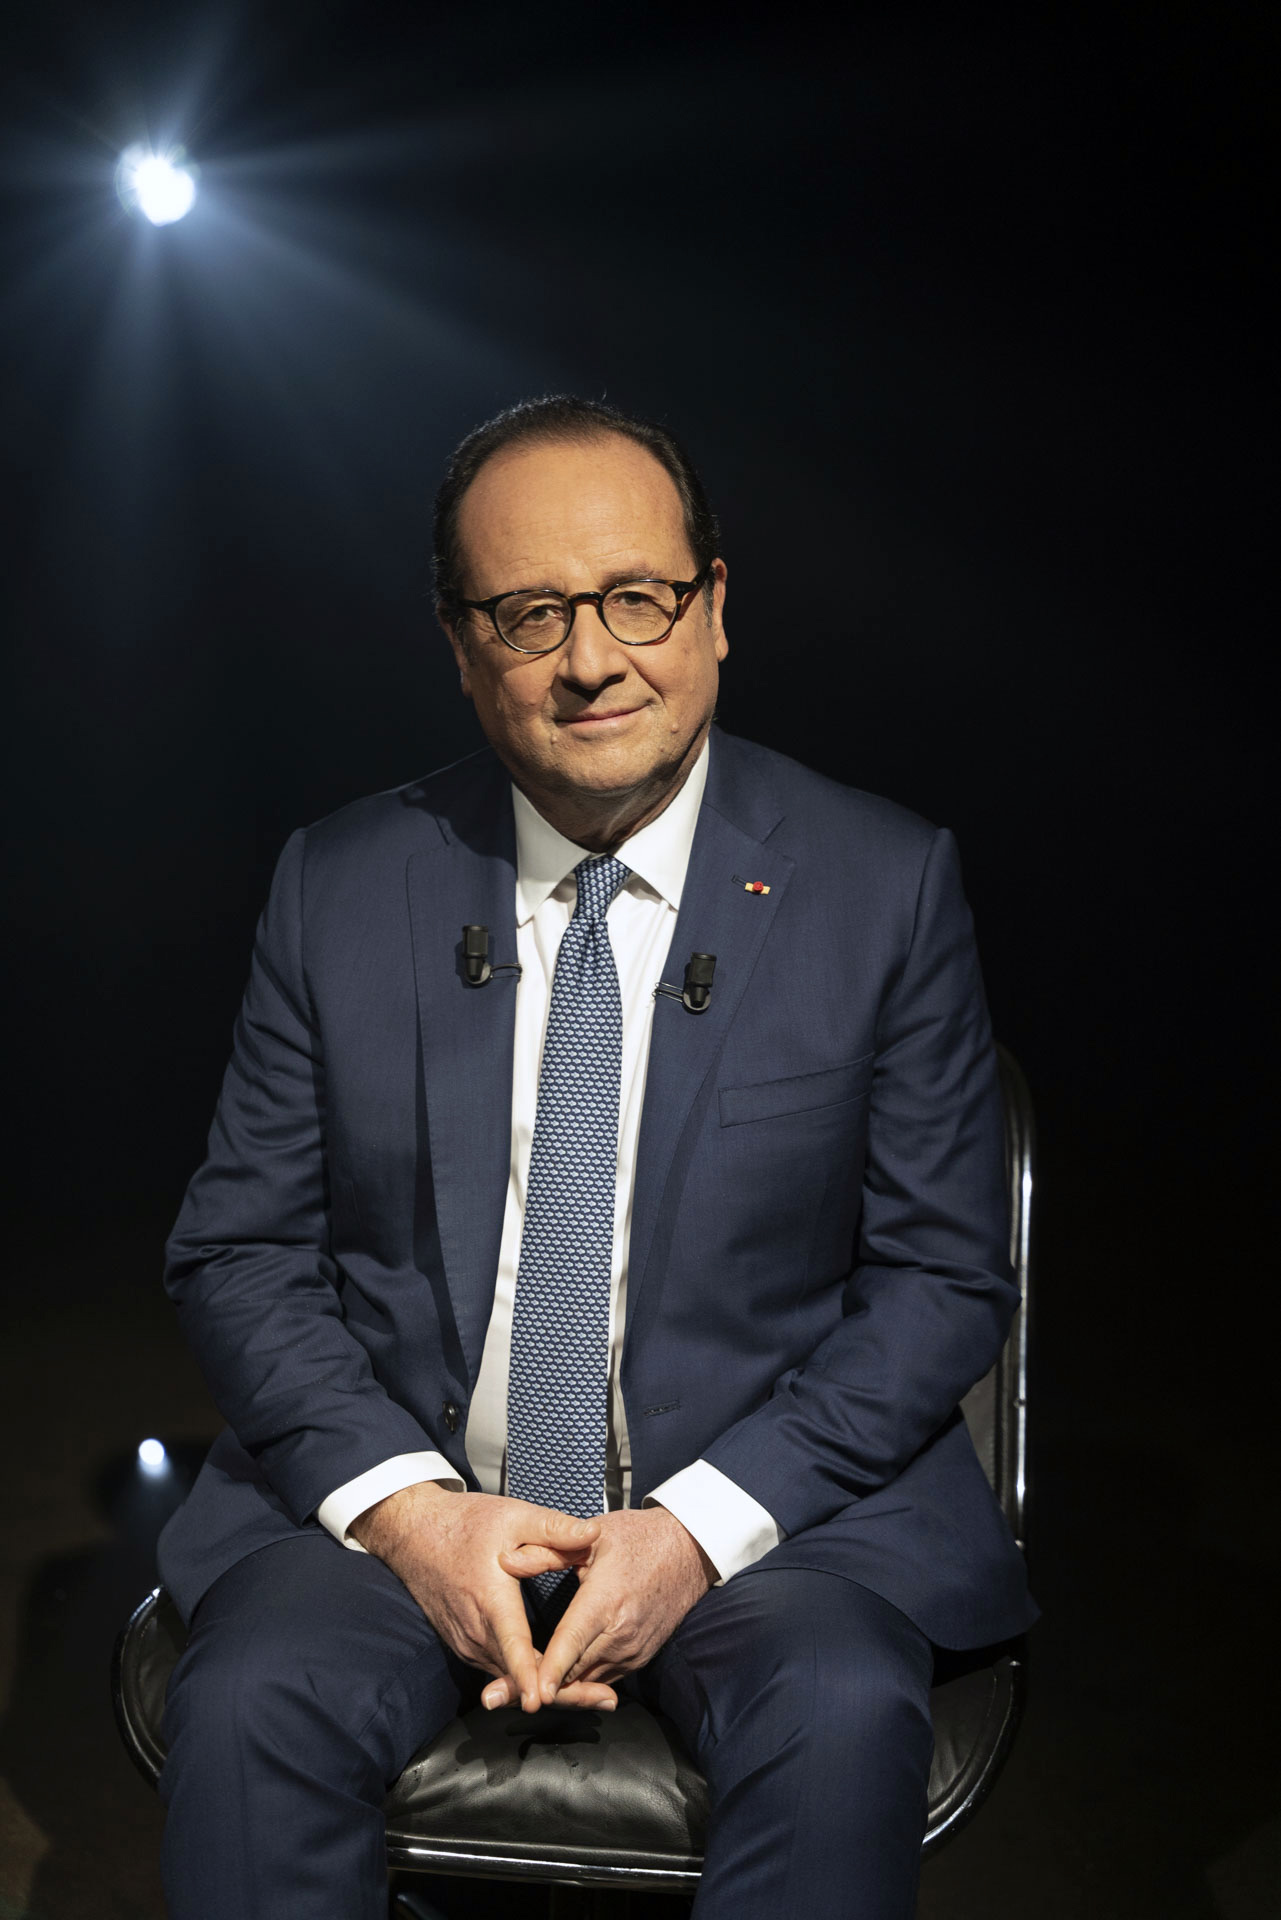 Portrait François Hollande Photographe Portraits corporate Paris, Maurine Tric,